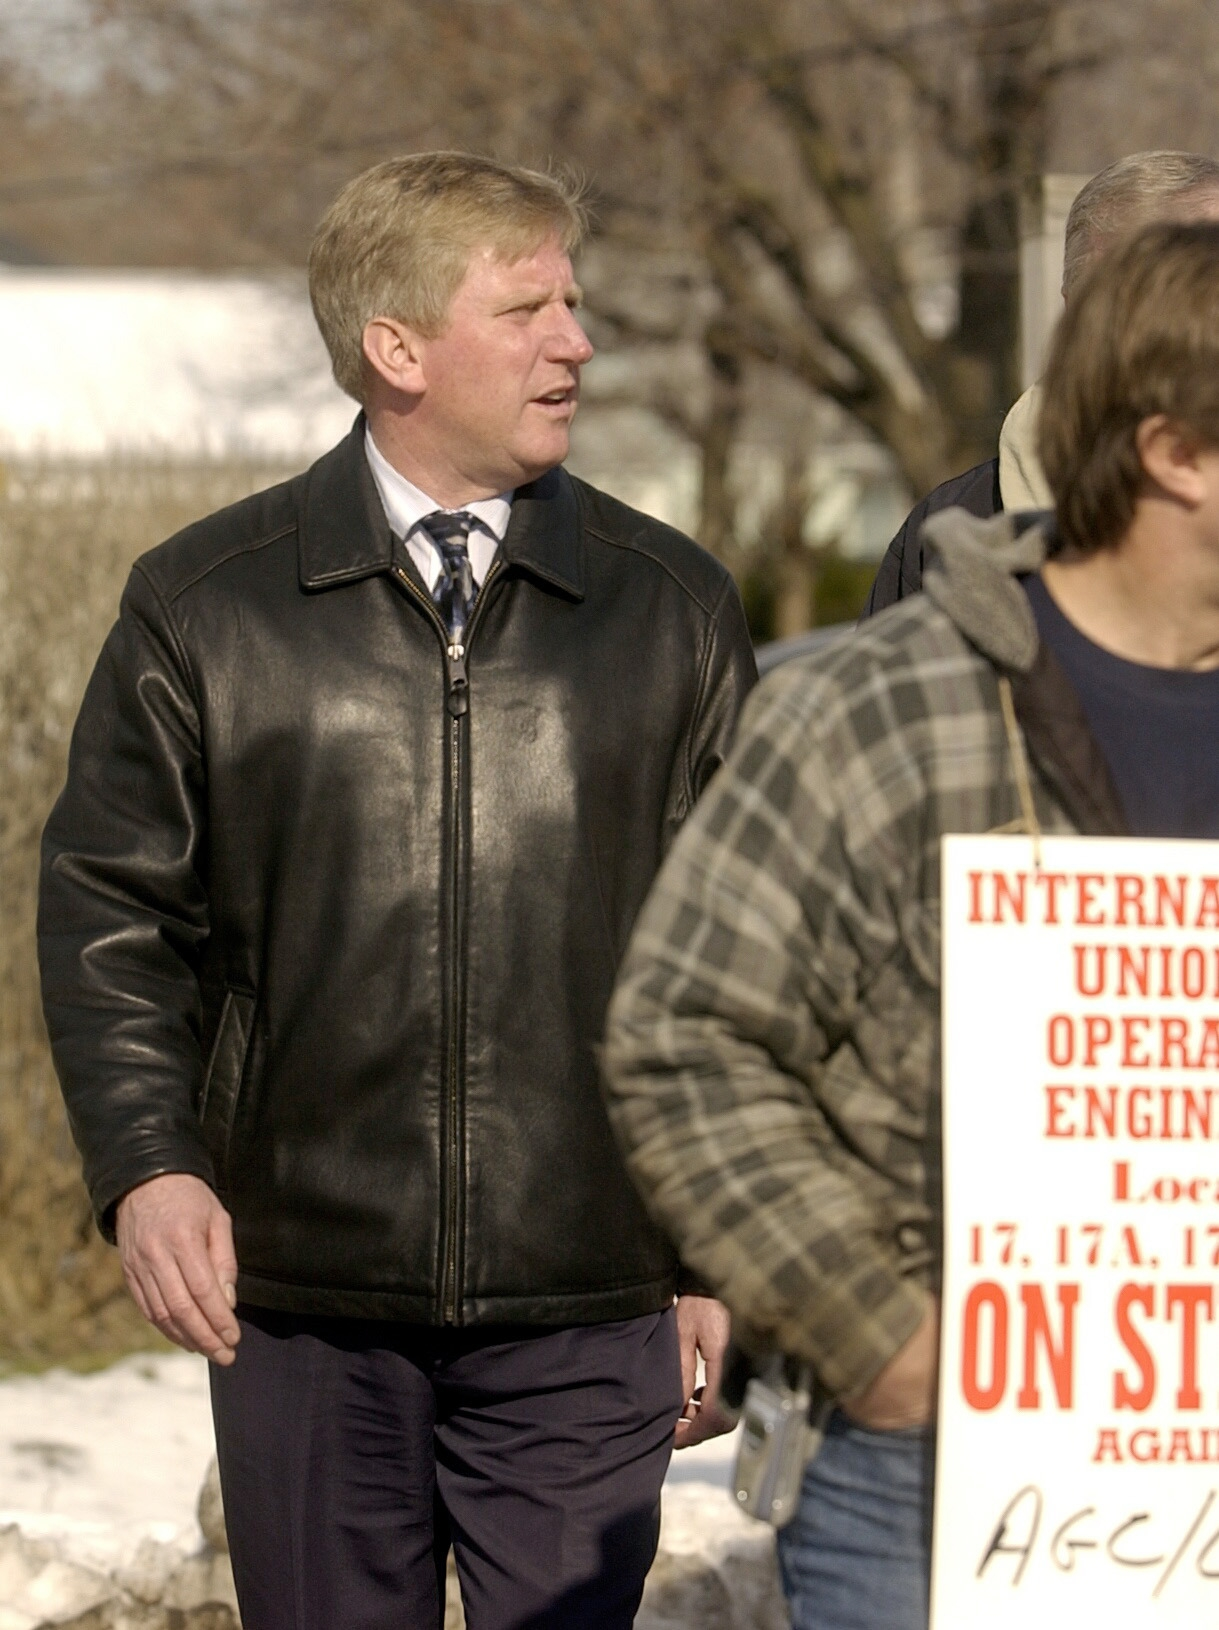 Mark Kirsch walks a picket line with members at the entrance of Union Concrete Counstruction in West Seneca in 2005. (News file photo)